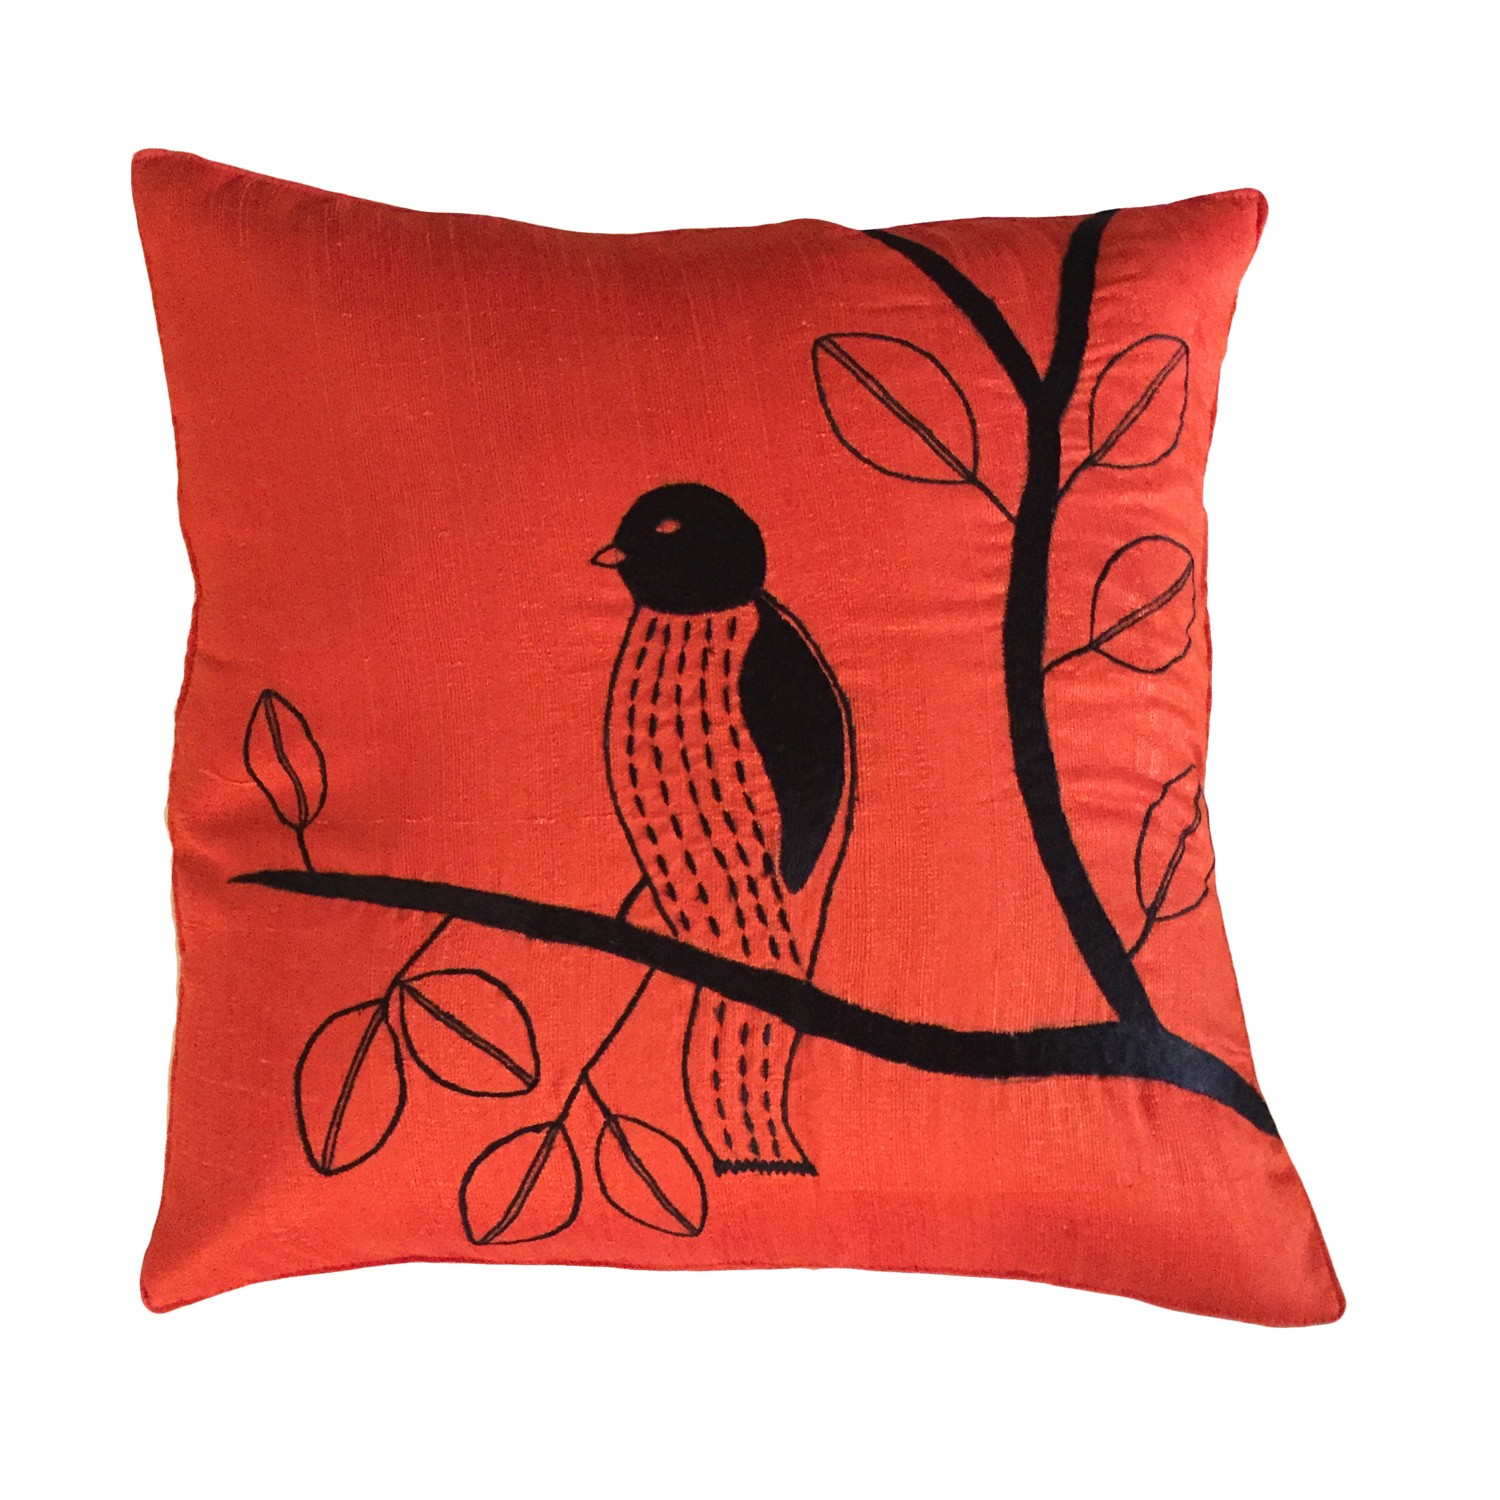 Orange with Bird Embroidery